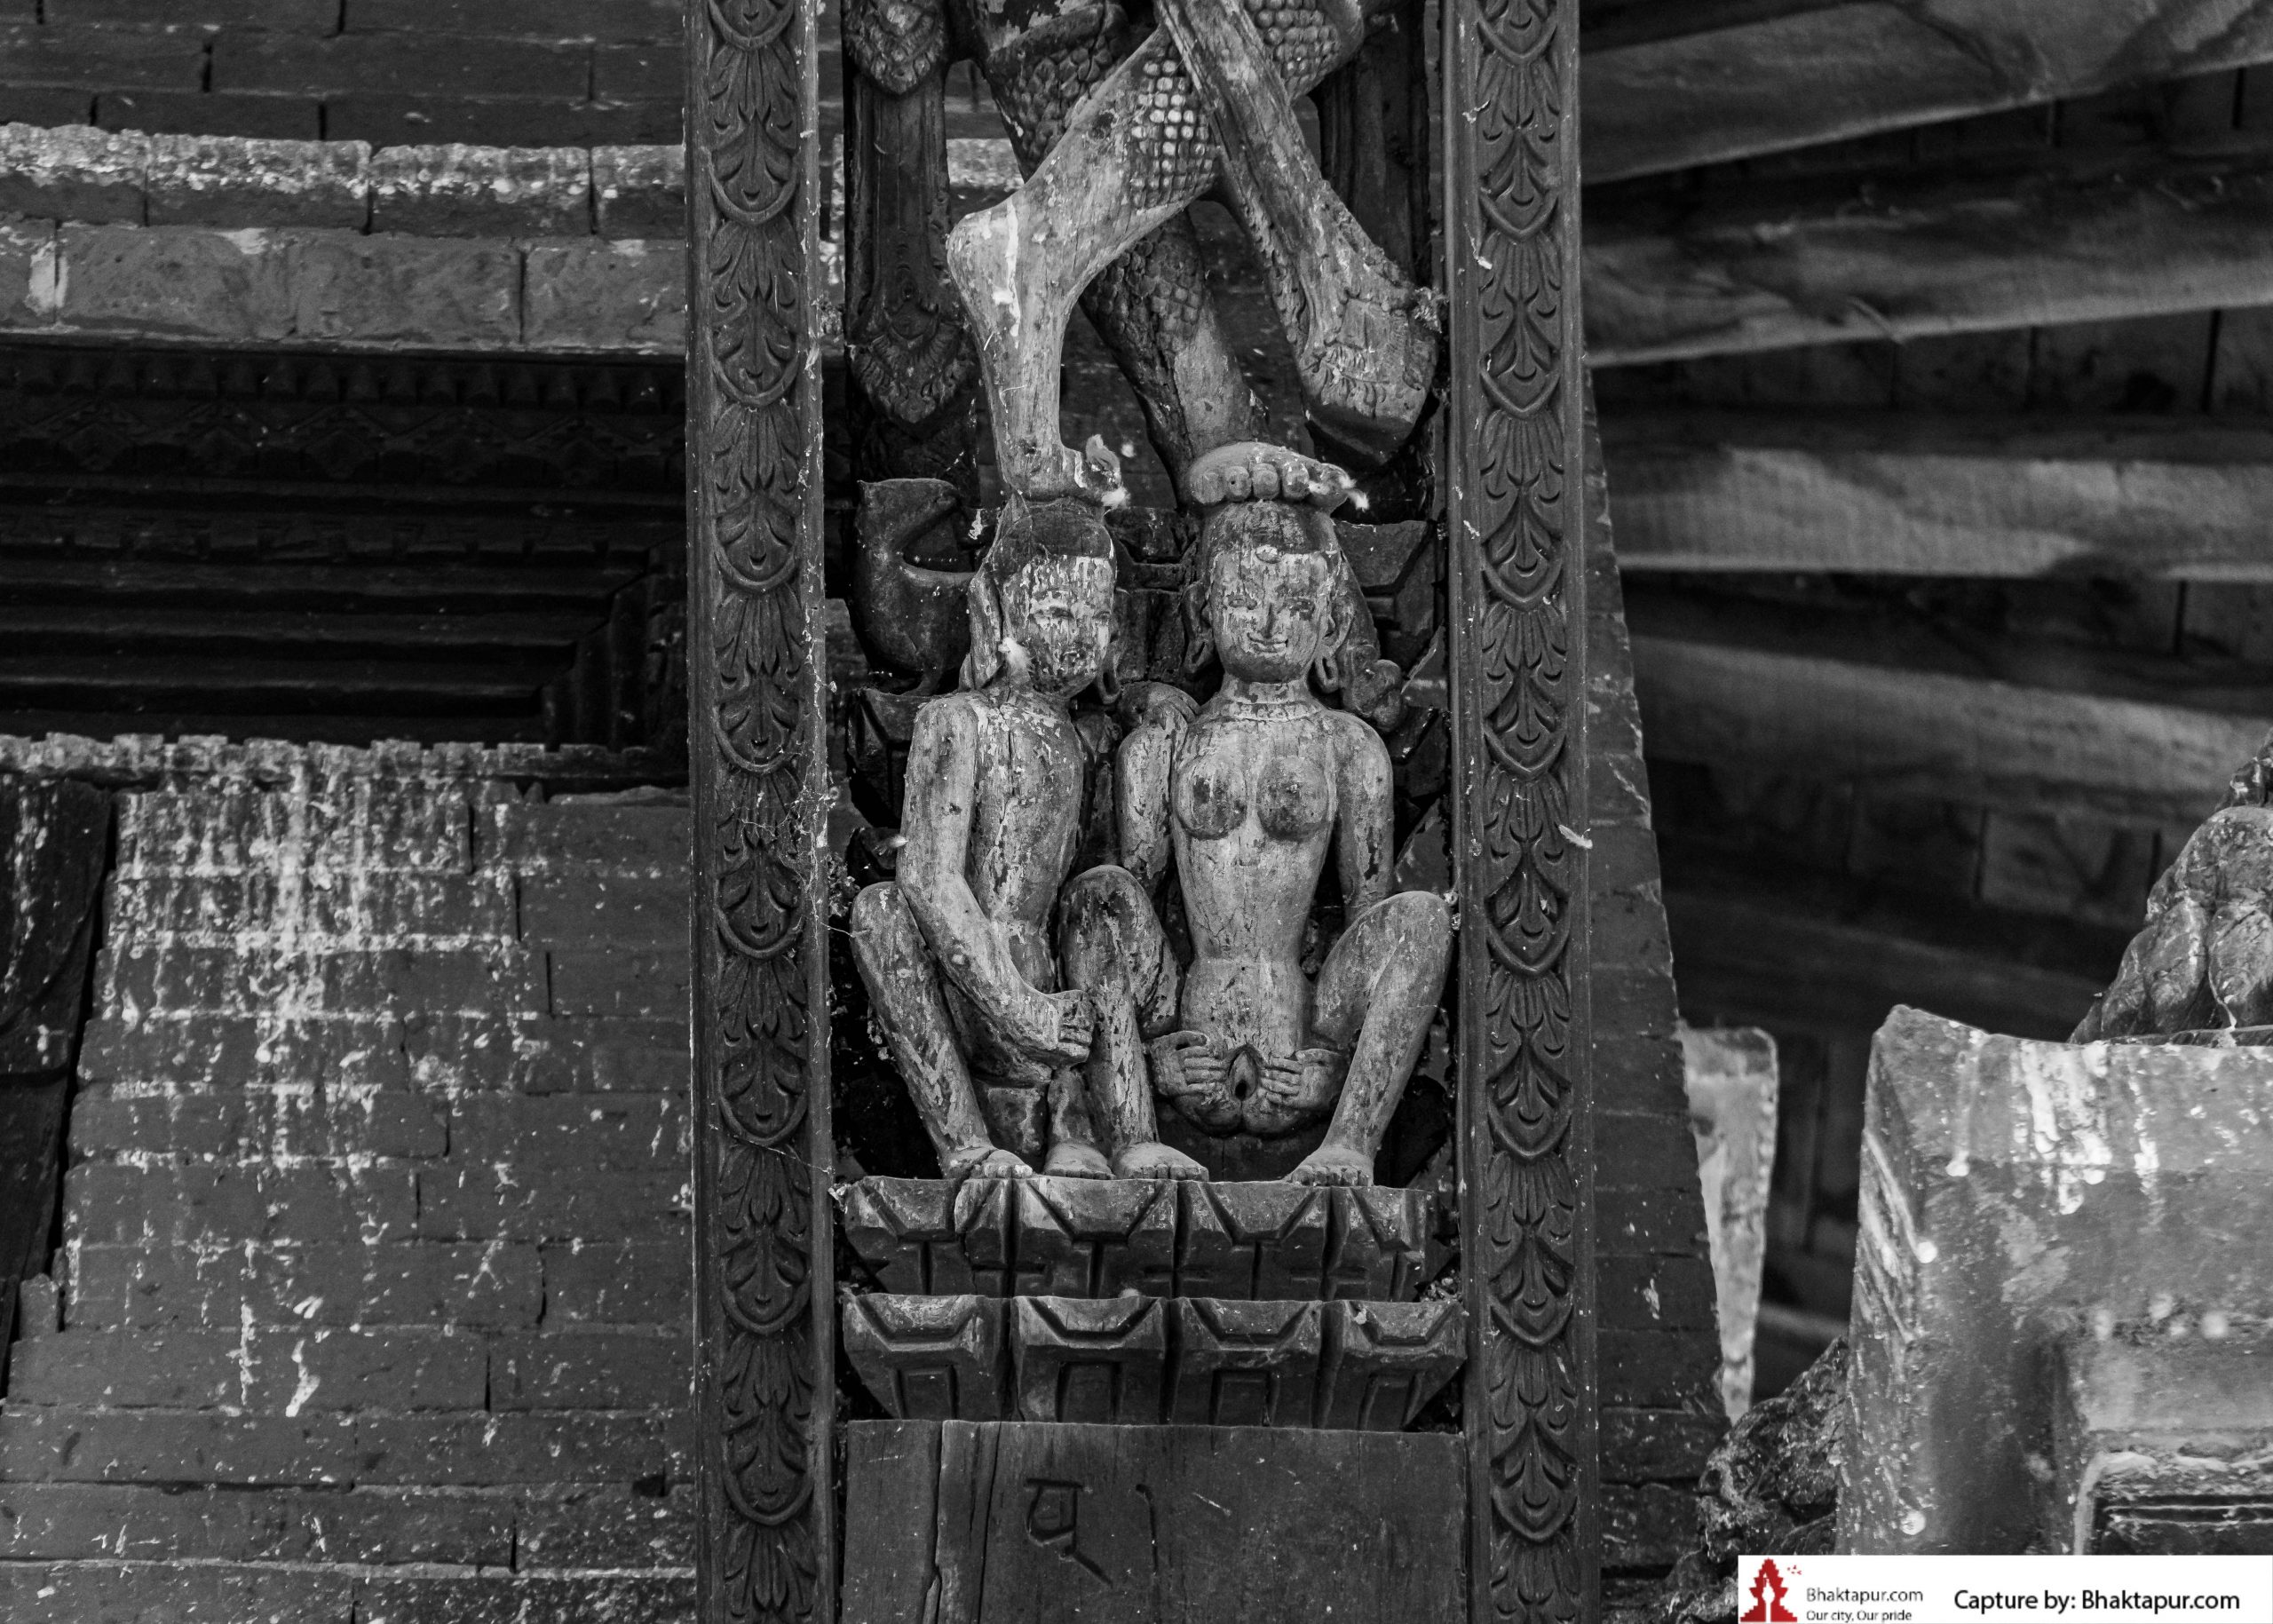 https://www.bhaktapur.com/wp-content/uploads/2021/08/erotic-carving-98-of-137-scaled.jpg